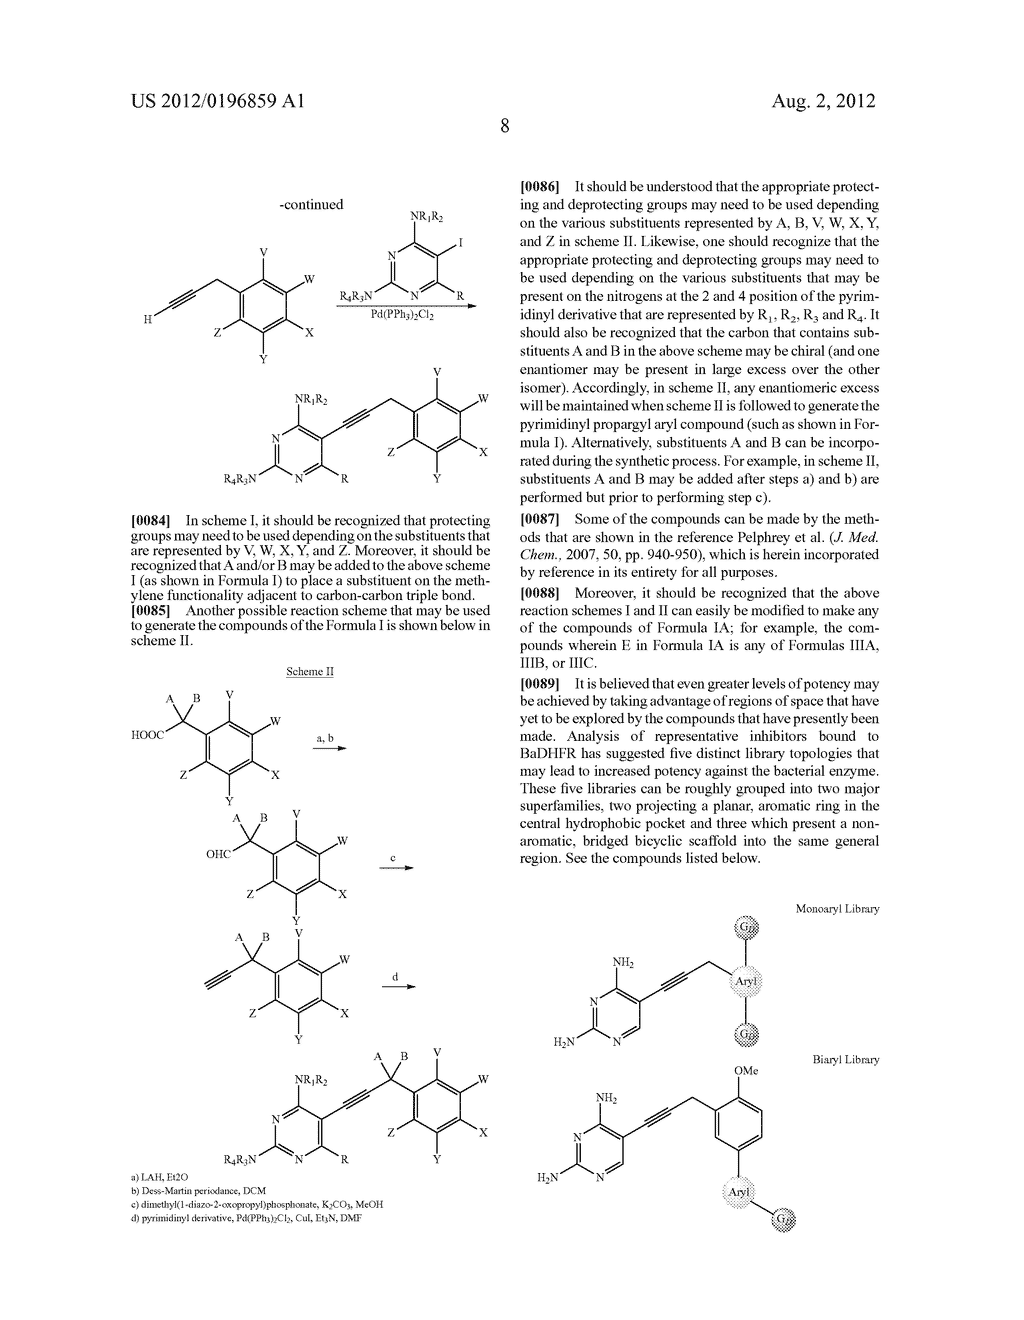 HETEROCYCLIC ANALOGS OF PROPARGYL-LINKED INHIBITORS OF DIHYDROFOLATE     REDUCTASE - diagram, schematic, and image 24